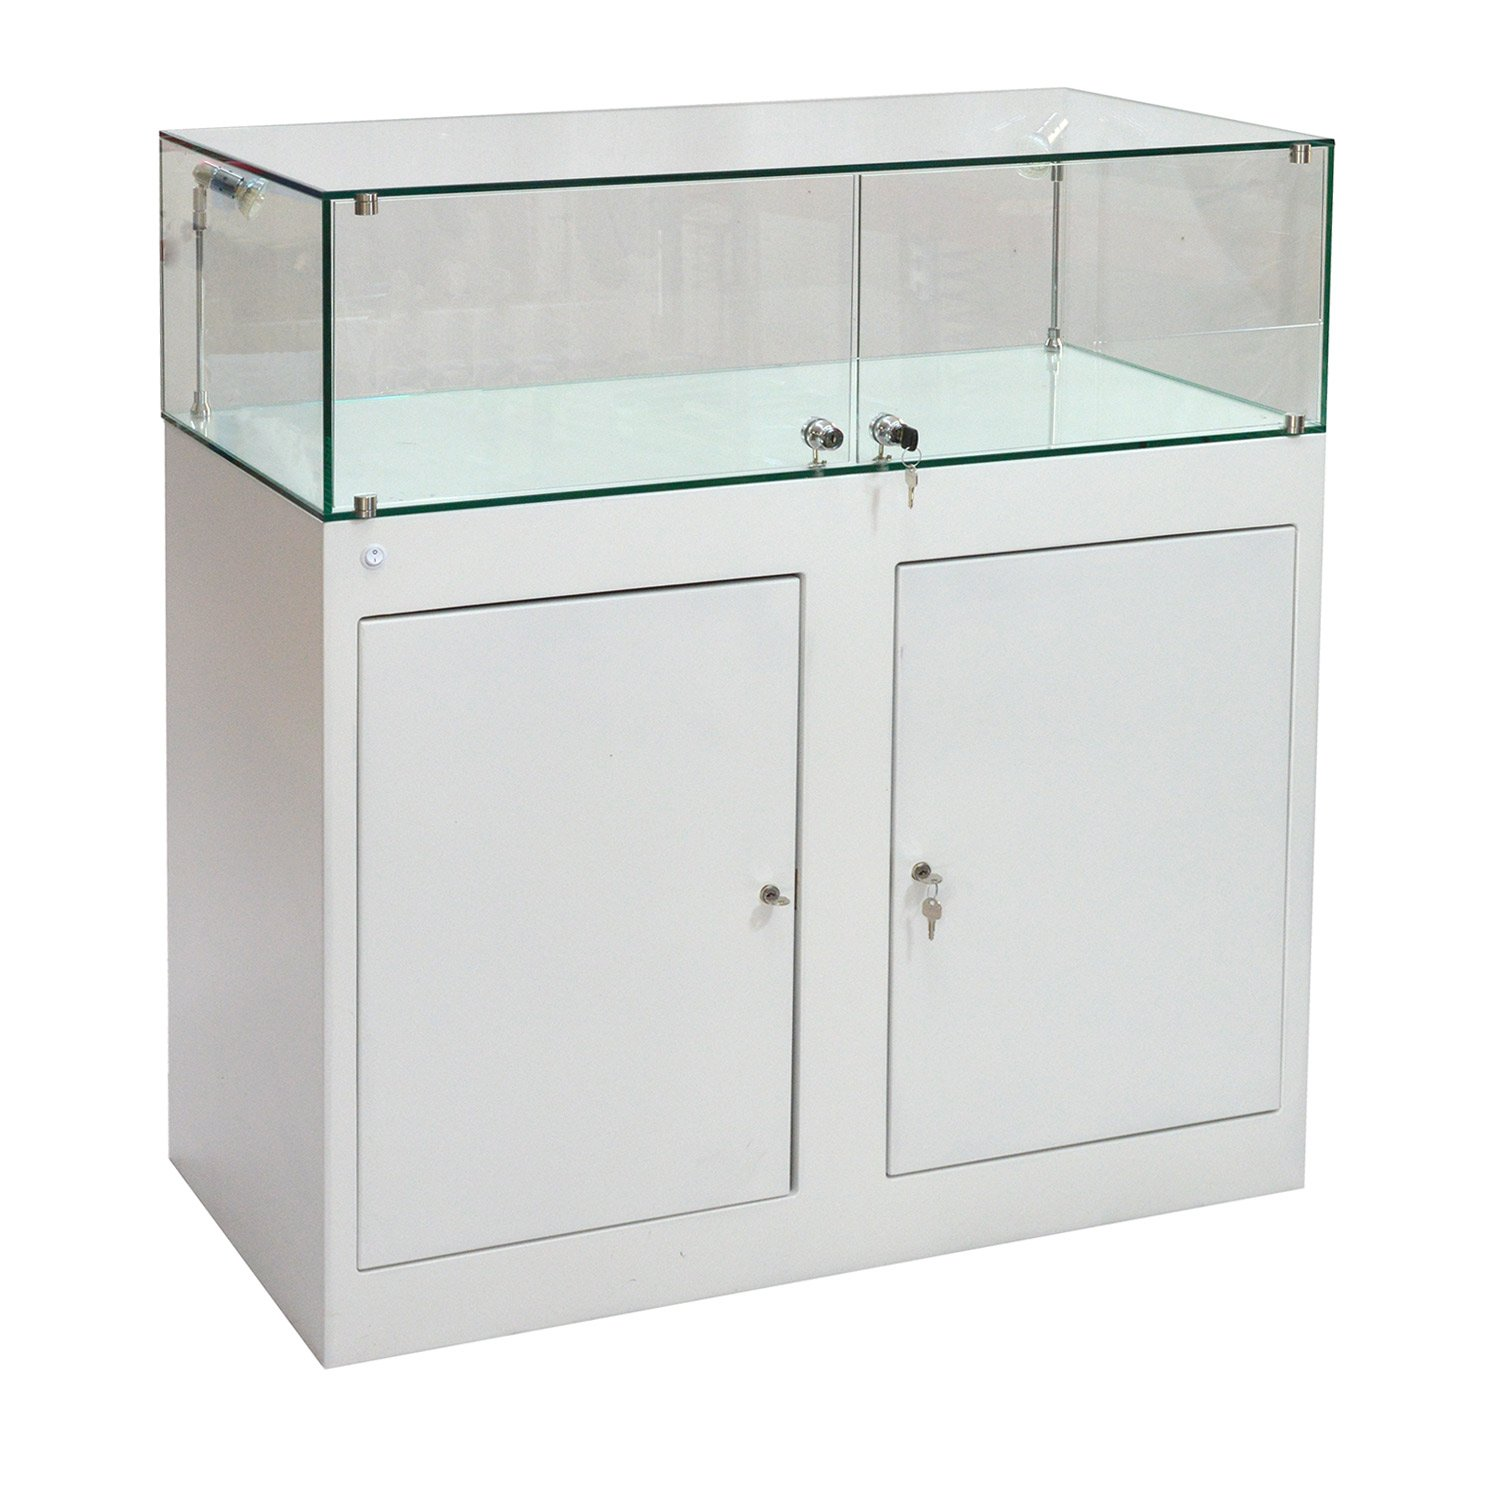 Light Wood Kitchen Cabinets Lockable Glass Display Cabinets Exhibitionplinths